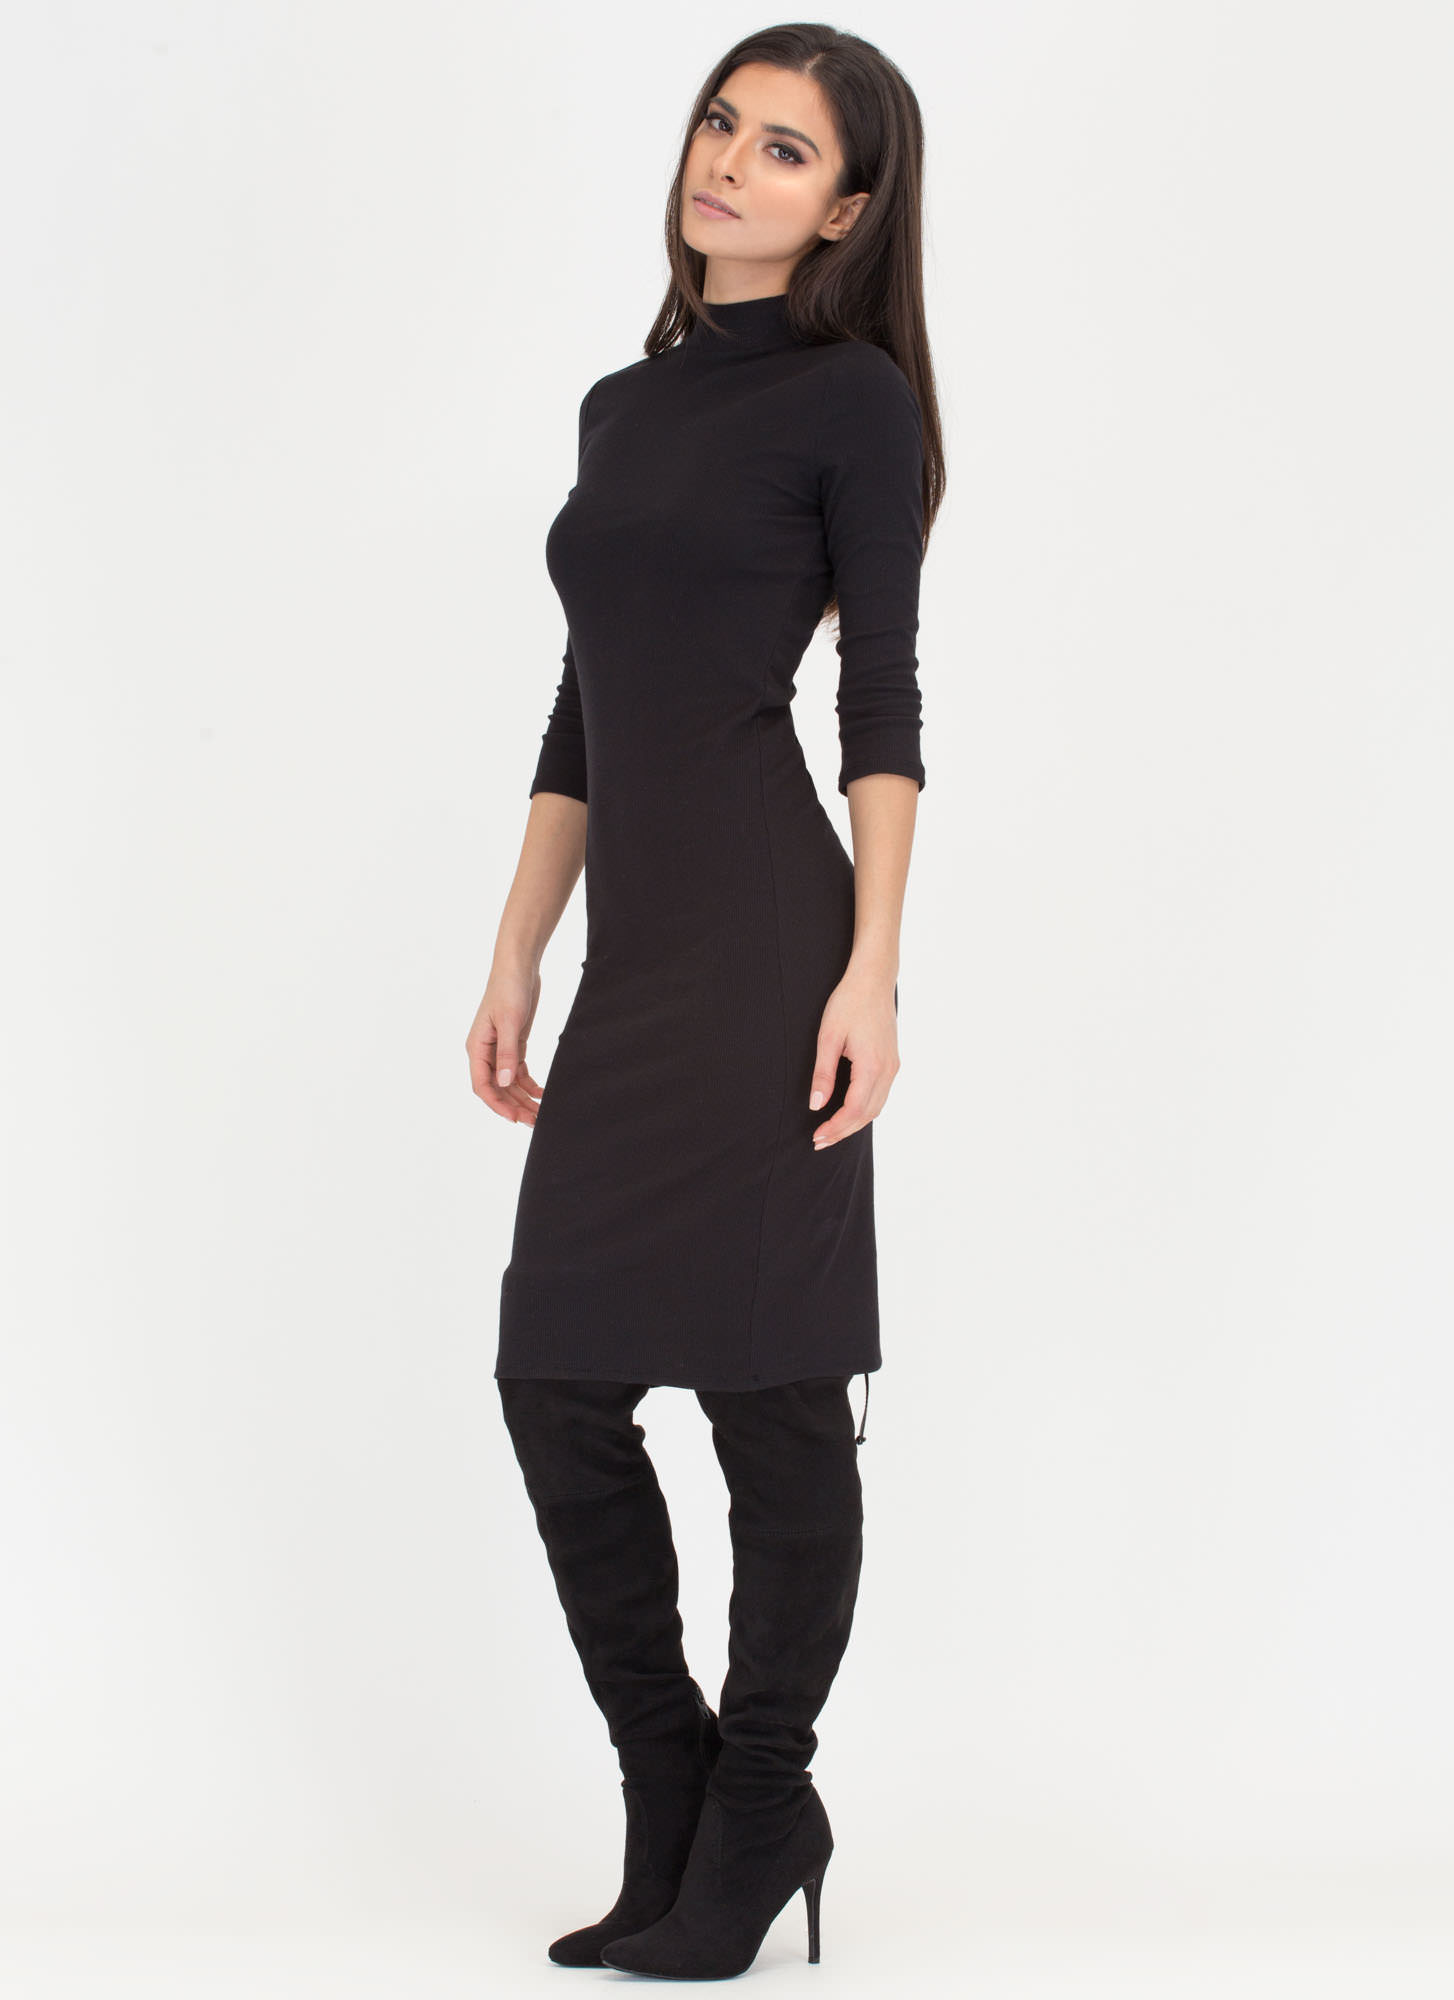 Back To Basics Ribbed Mockneck Dress MARSALA OLIVE BLACK - GoJane.com